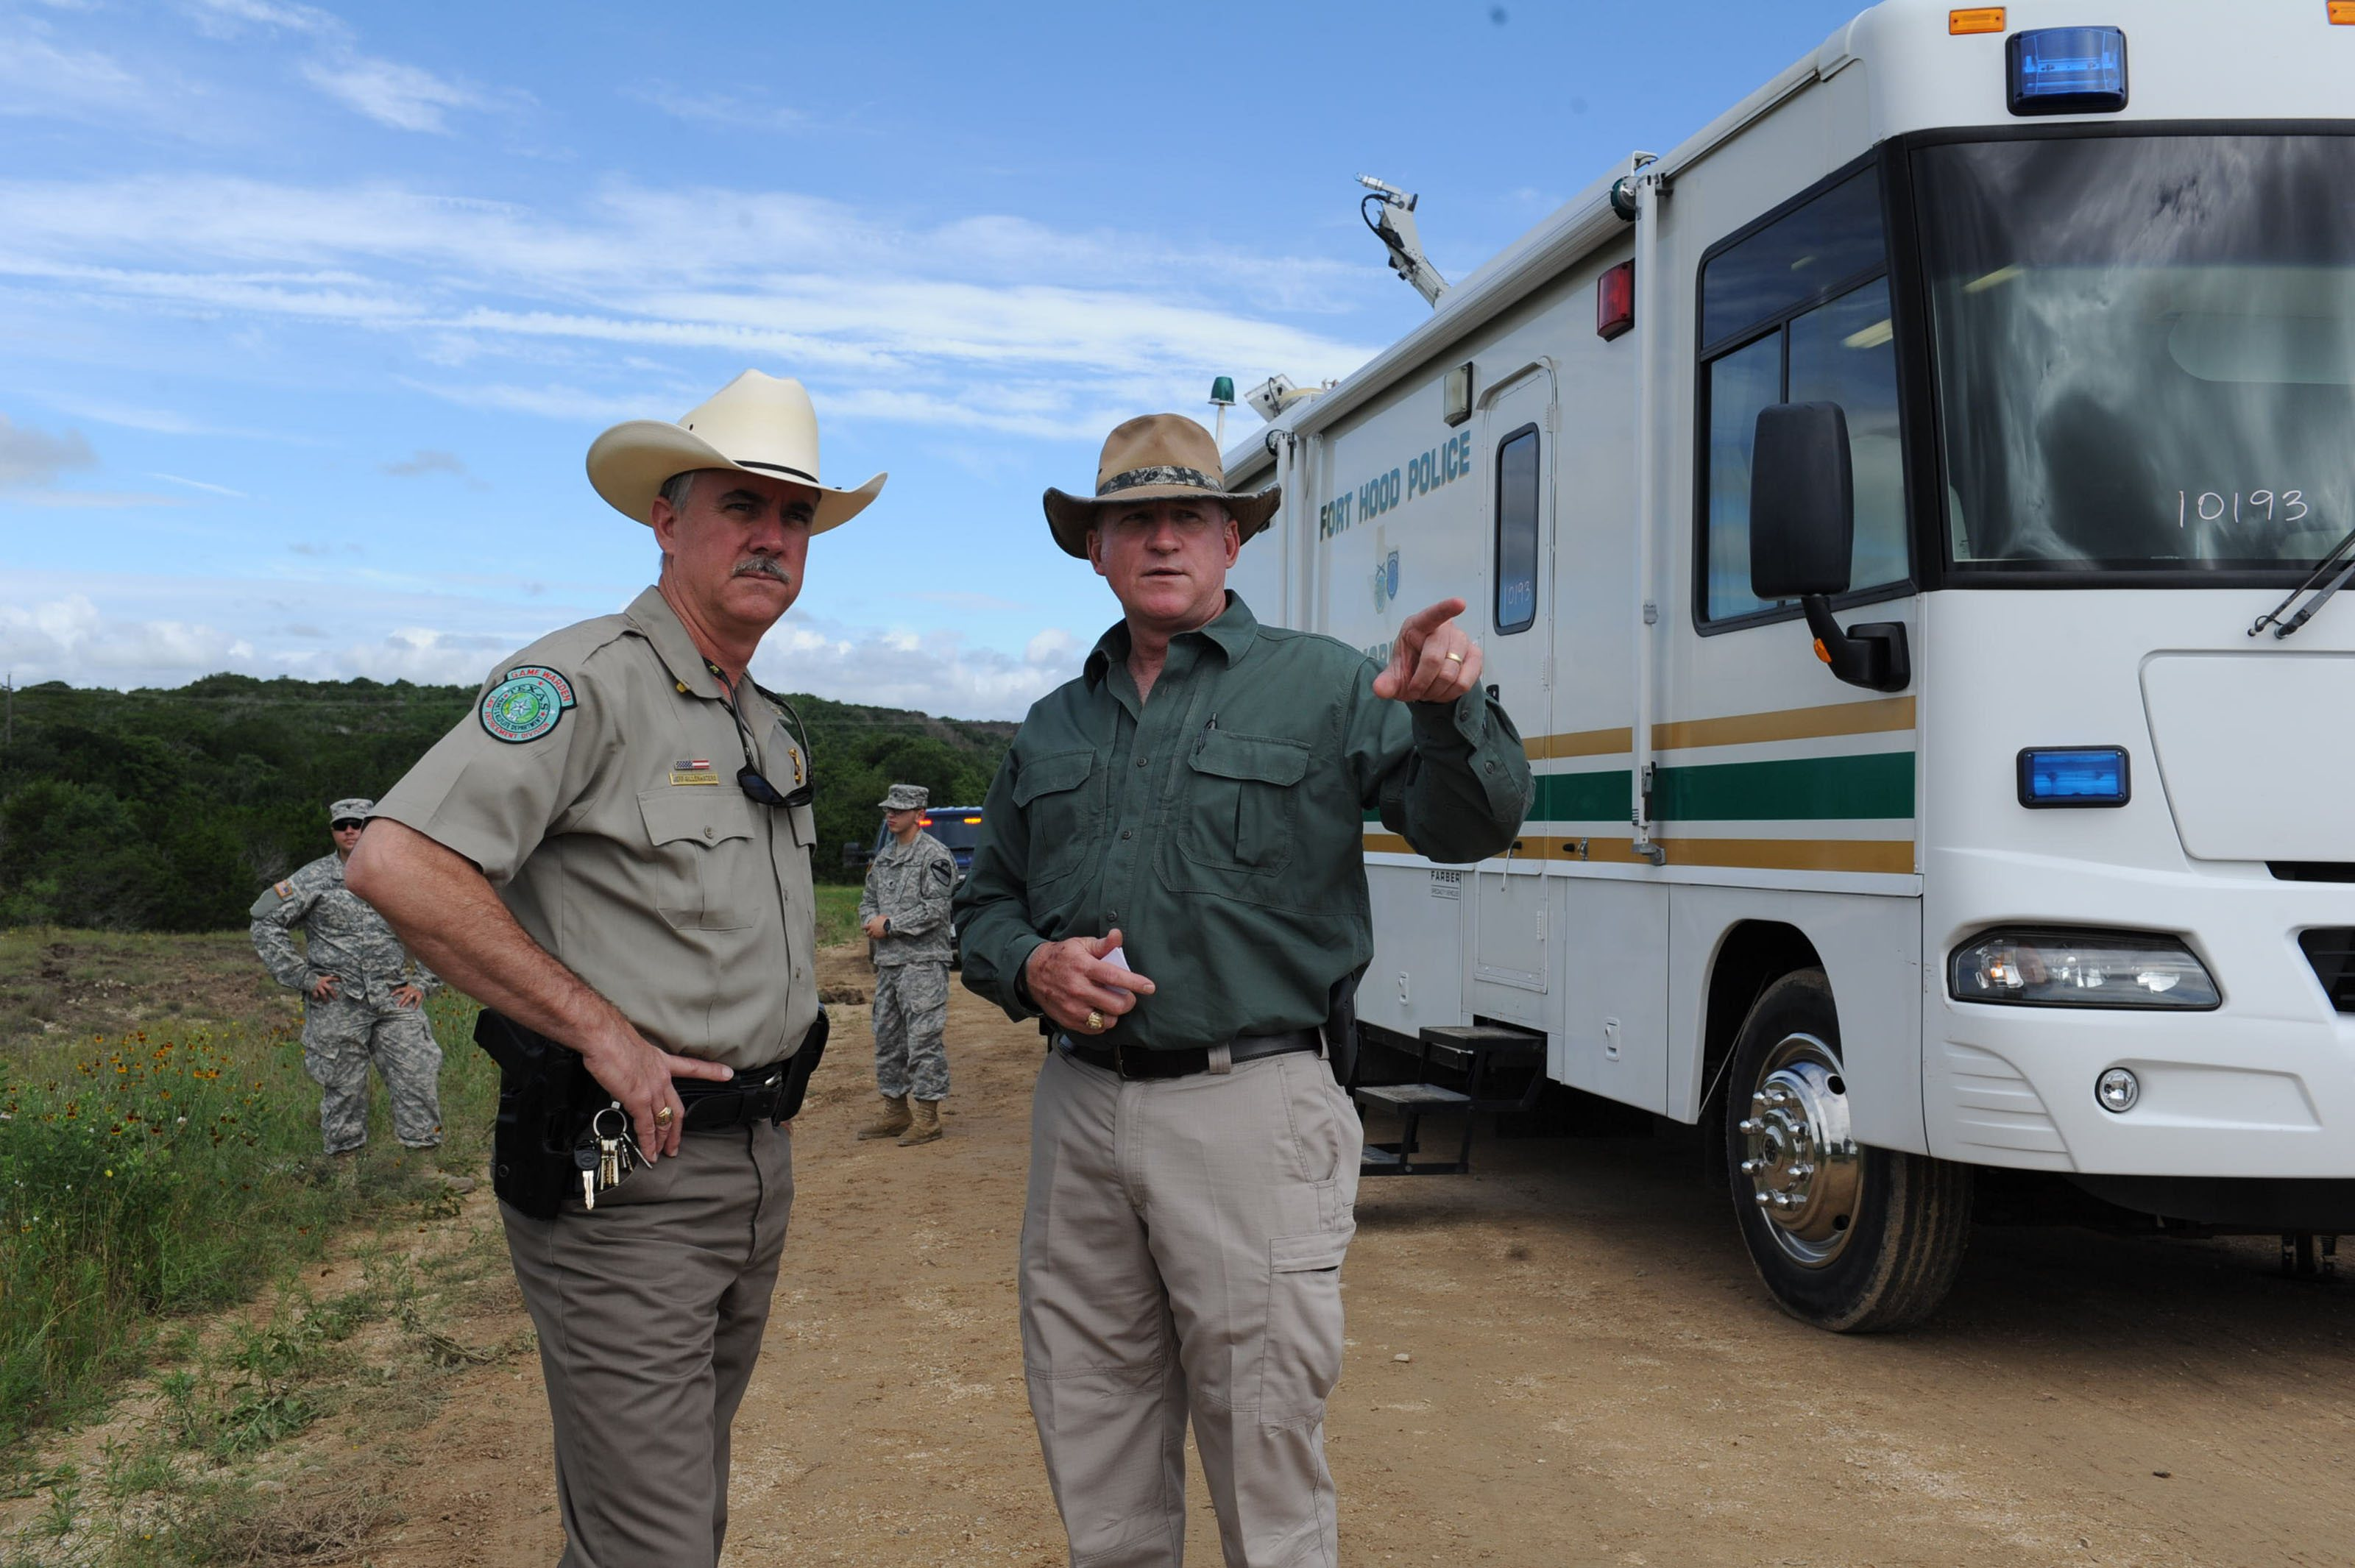 Texas Game Warden Jeff Gillenwaters and Chris Zimmer, deputy director for Fort Hood's Directorate of Emergency Services, discuss search and recovery efforts for four missing soldiers in Fort Hood